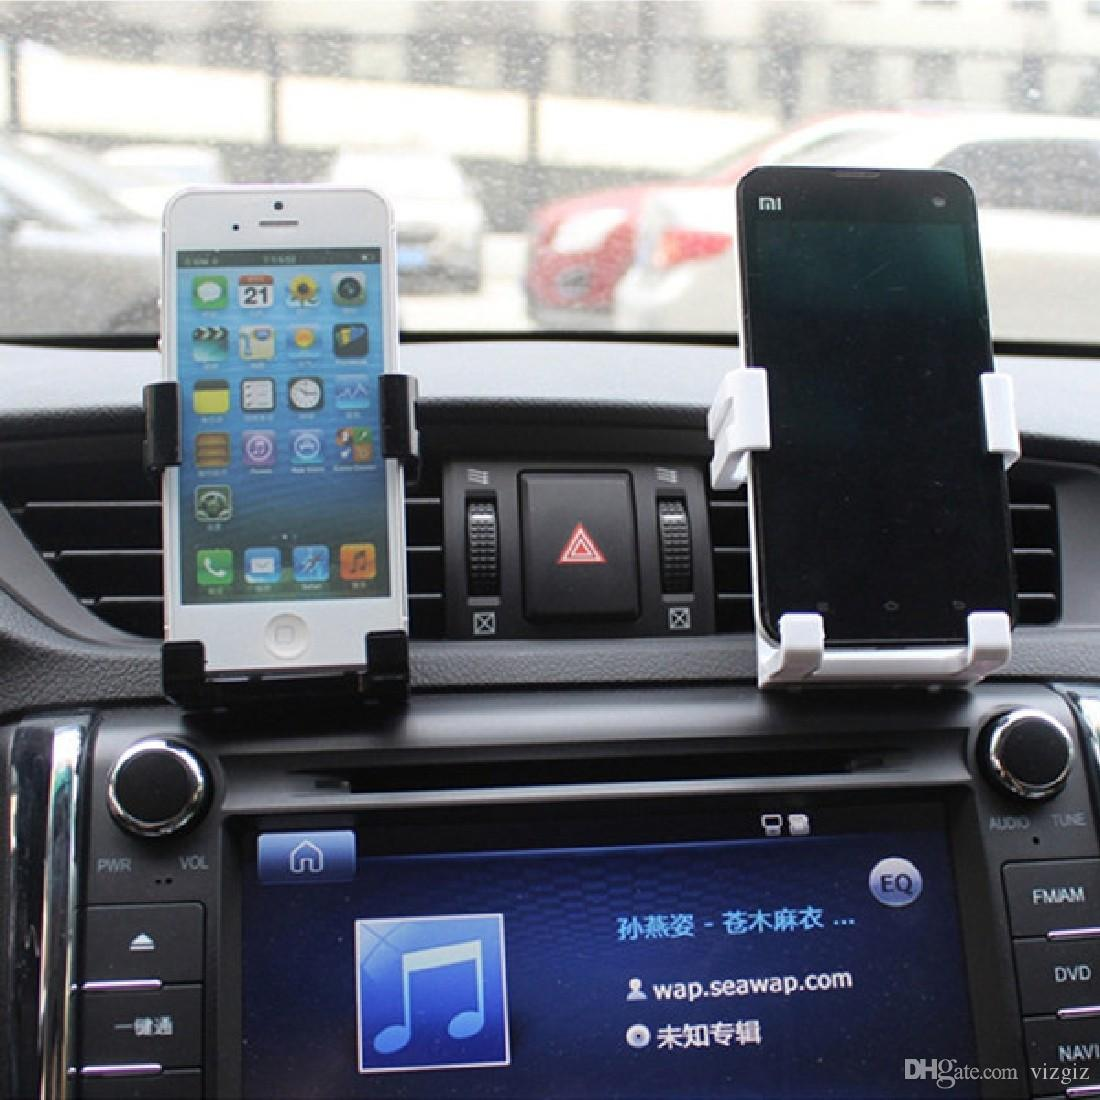 reputable site f513d 77d76 Etmakit Universal Stand Car Holder For Iphone 6/Plus 5s Car Air Vent Mount  Holder GPS Accessories Stand For Mobile Phones Holder